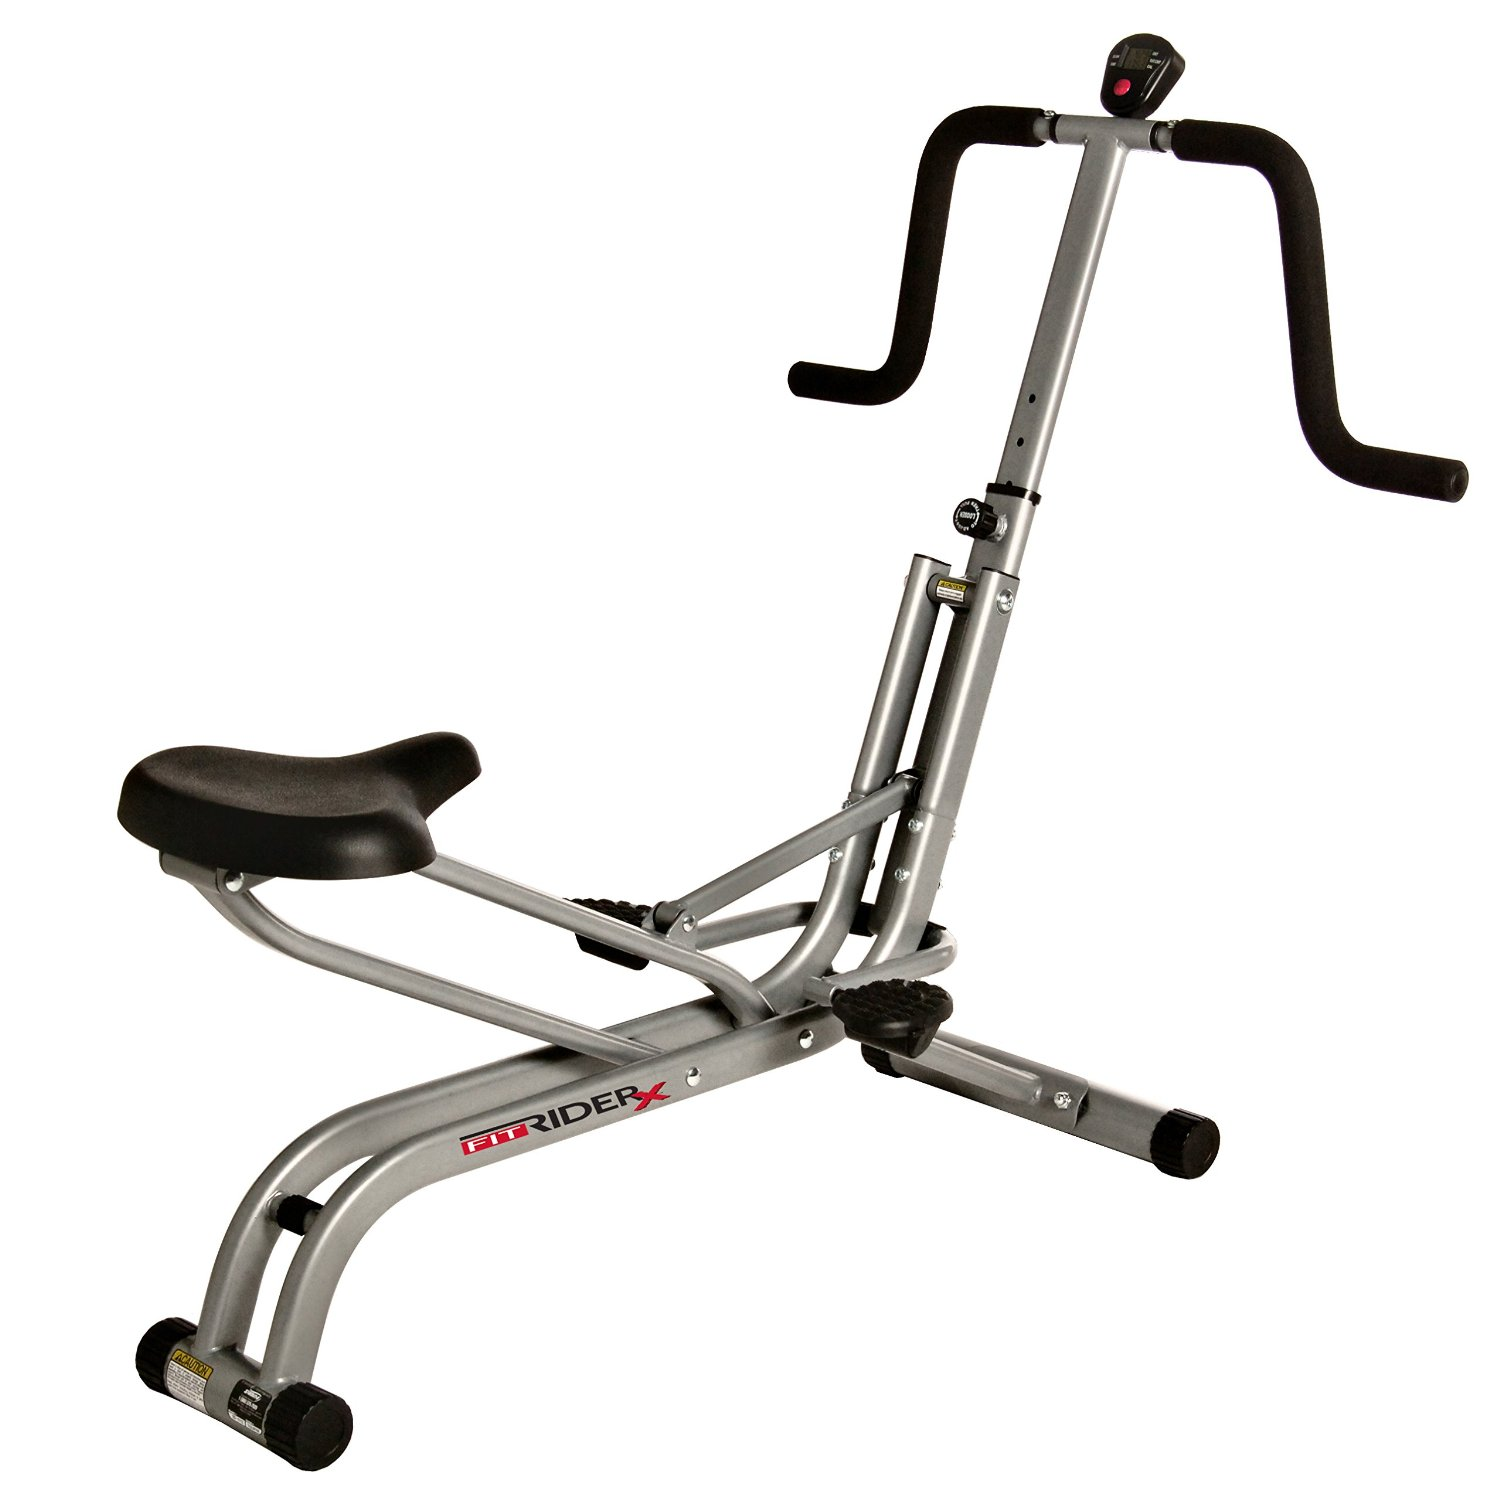 Brenda DyGraf's FitRider X Exercise System with Computer and DVD